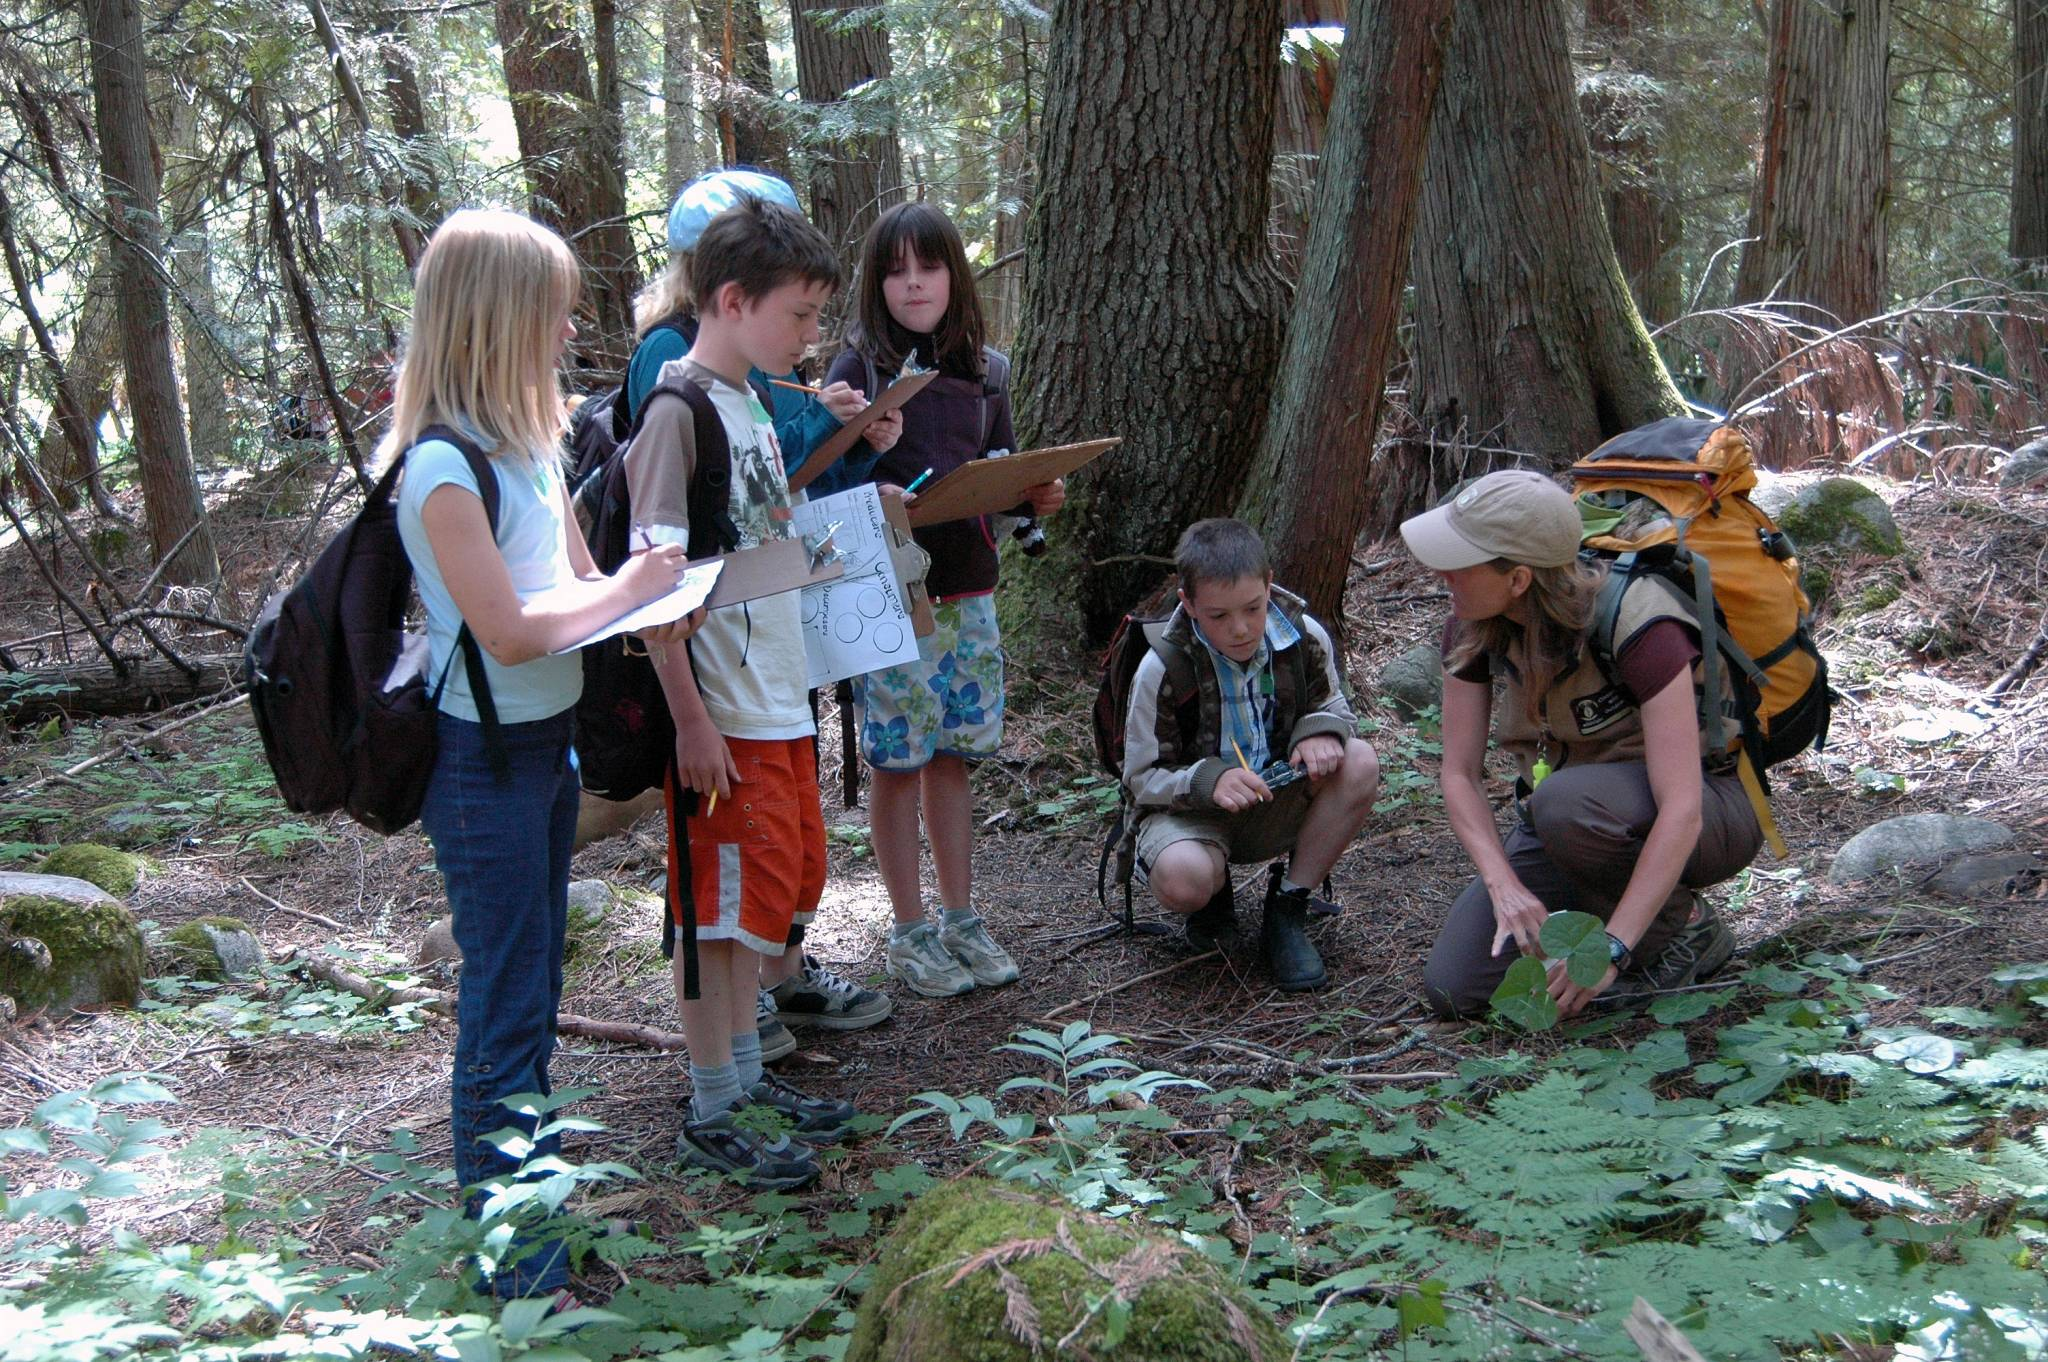 Appendix F - CWO 2008 looking at plants